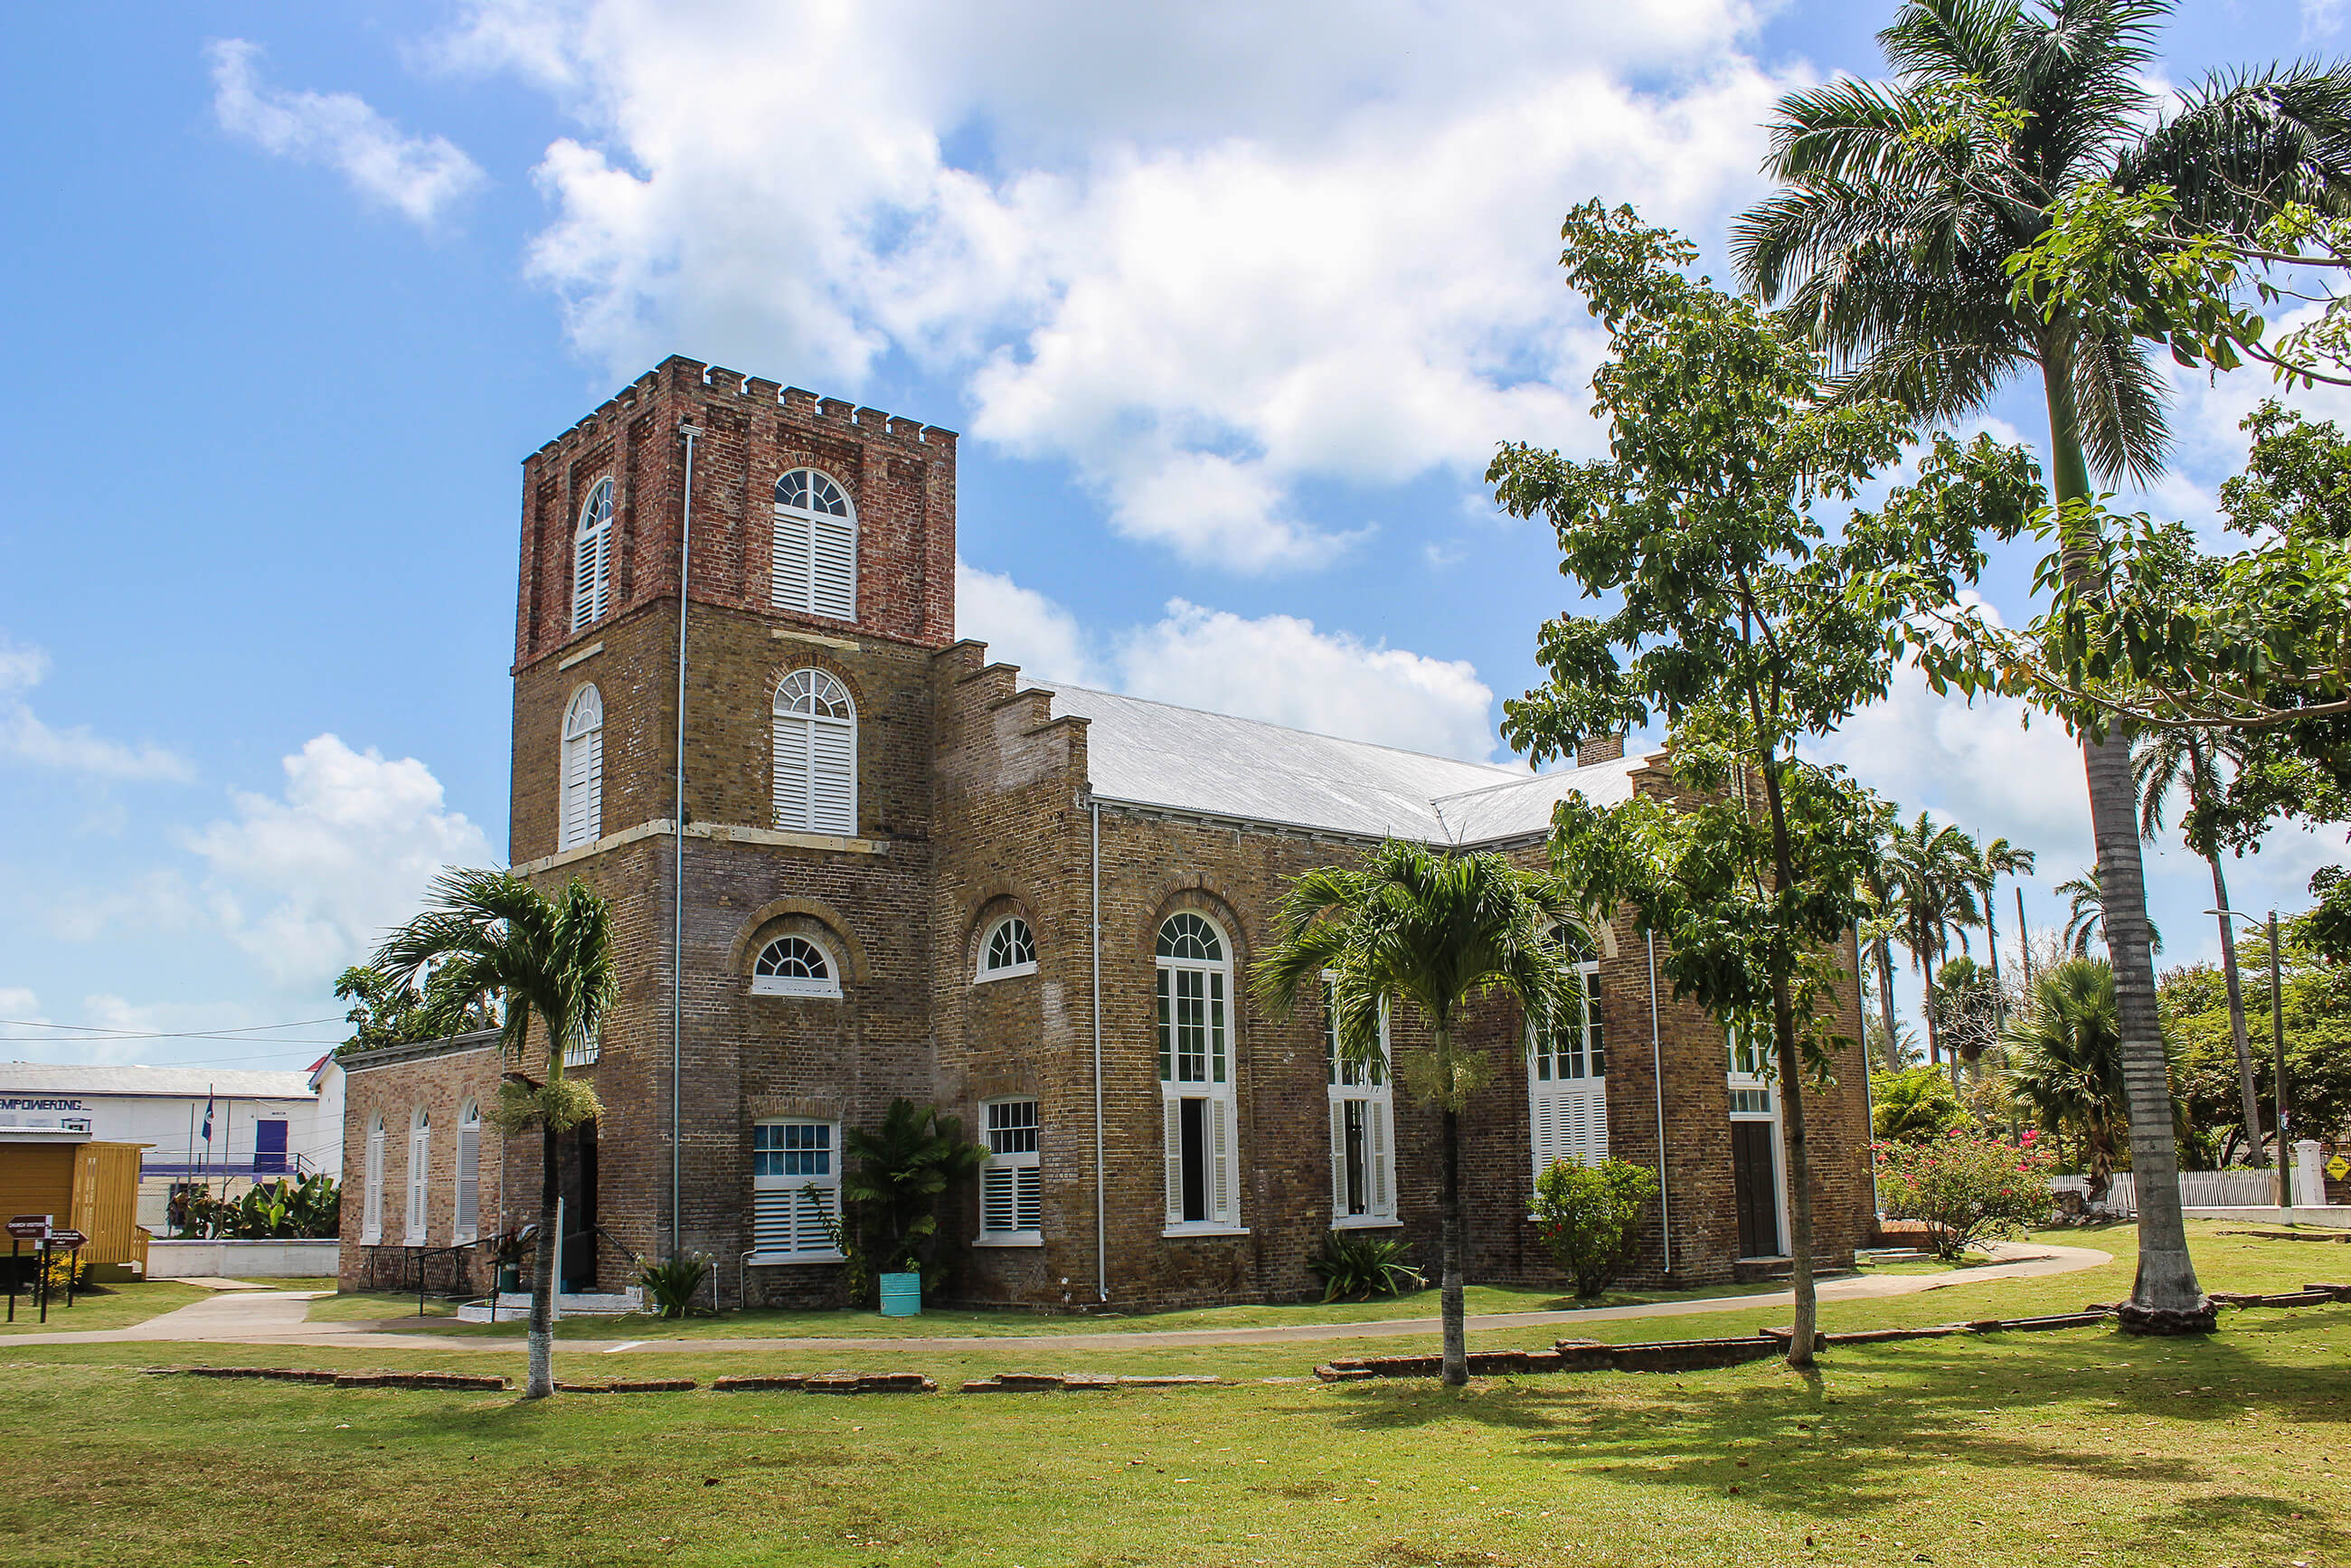 https://bubo.sk/uploads/galleries/7388/alena_spisakova_belize_st_johns_cathedral.jpg